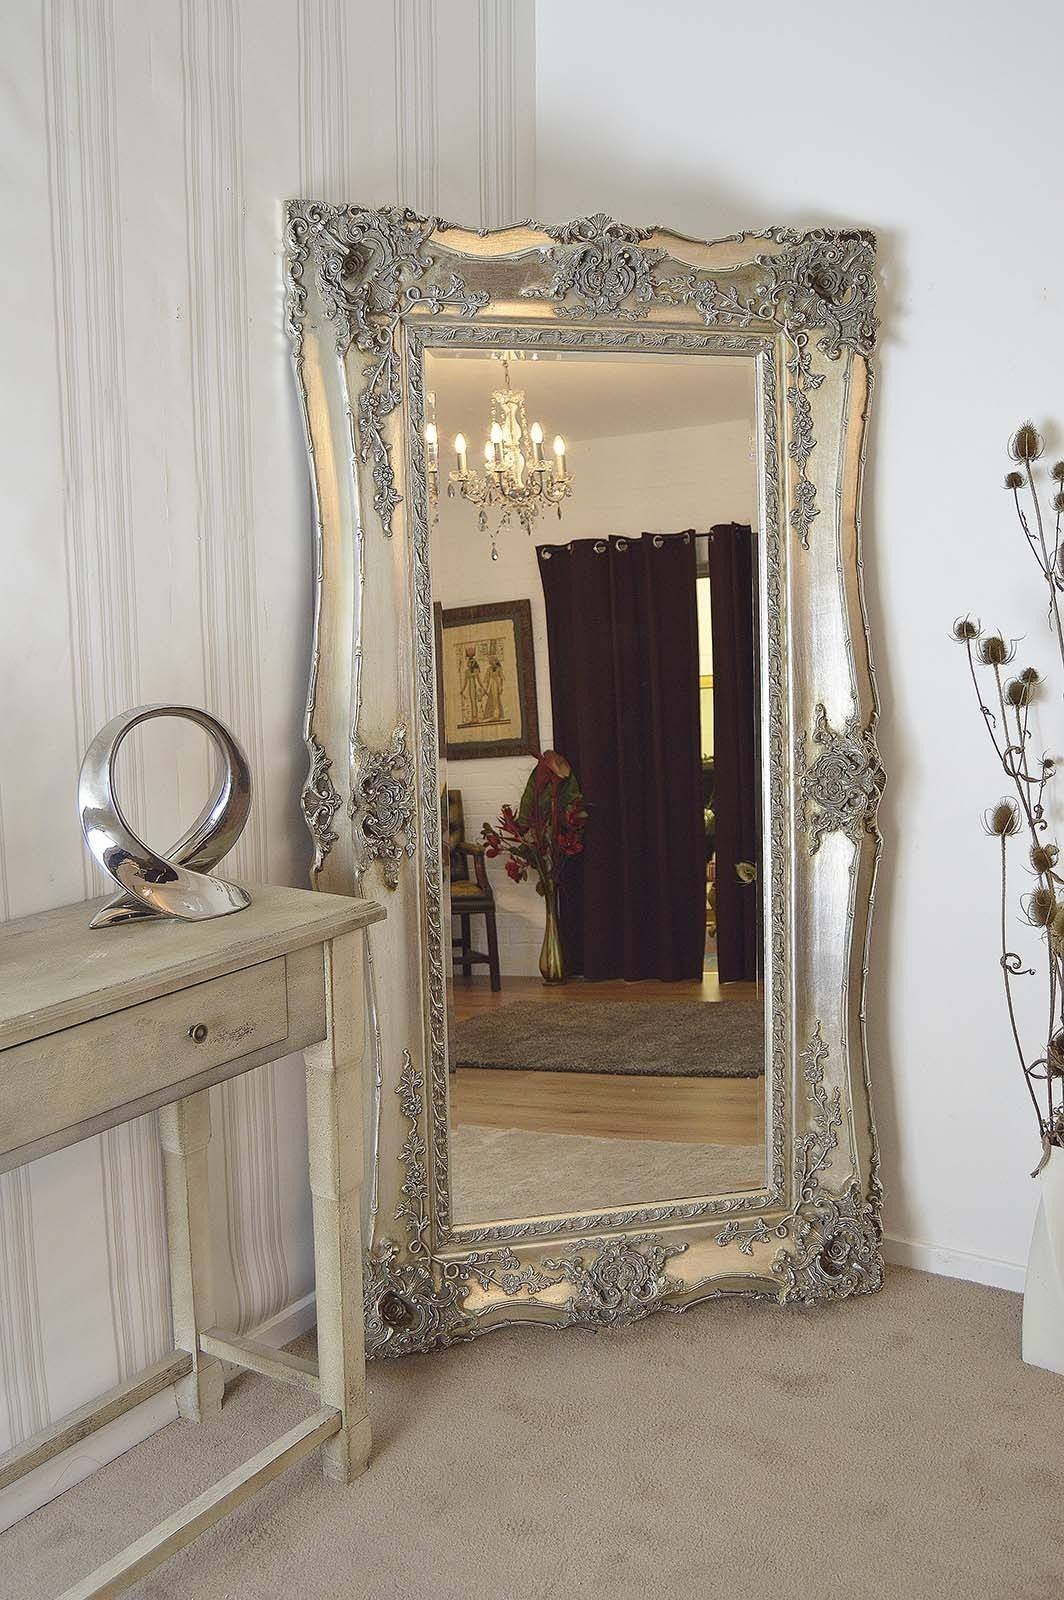 Homeware: Oval Full Length Standing Mirror | Large Floor Mirrors throughout Extra Large Free Standing Mirrors (Image 20 of 25)